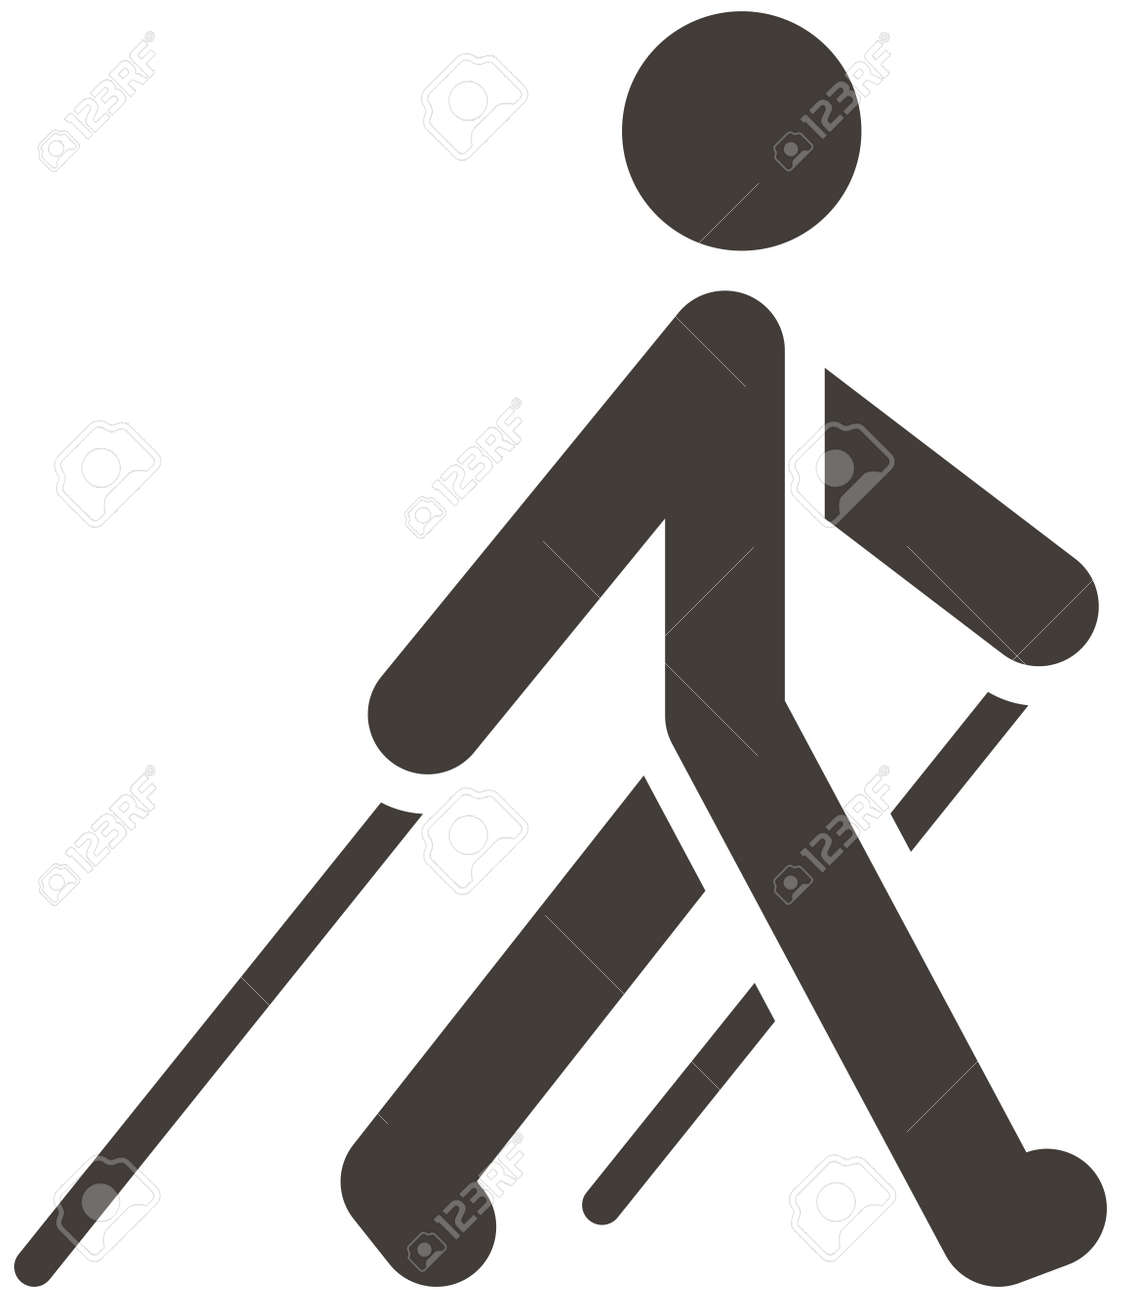 Health And Fitness Icons Set - Nordic Walking Icon Royalty Free ...